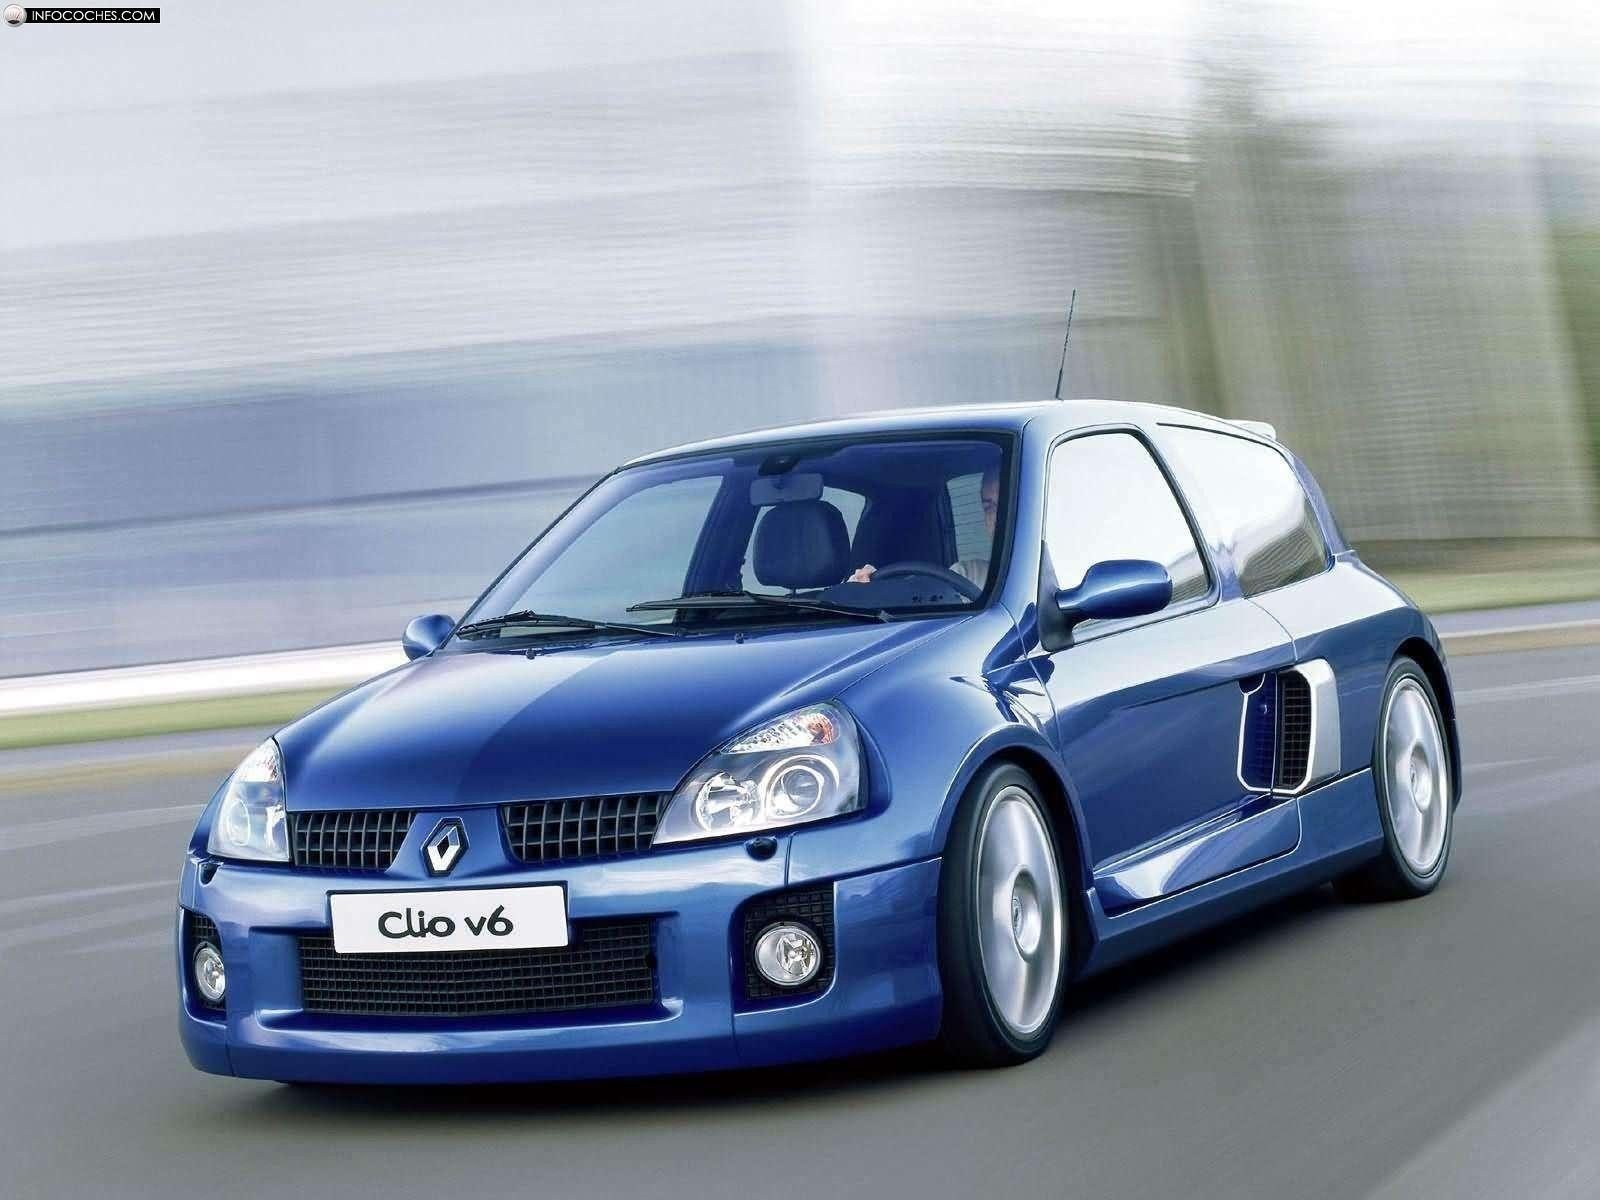 Cars vehicles Renault Clio Renault sports cars Renault Clio V6